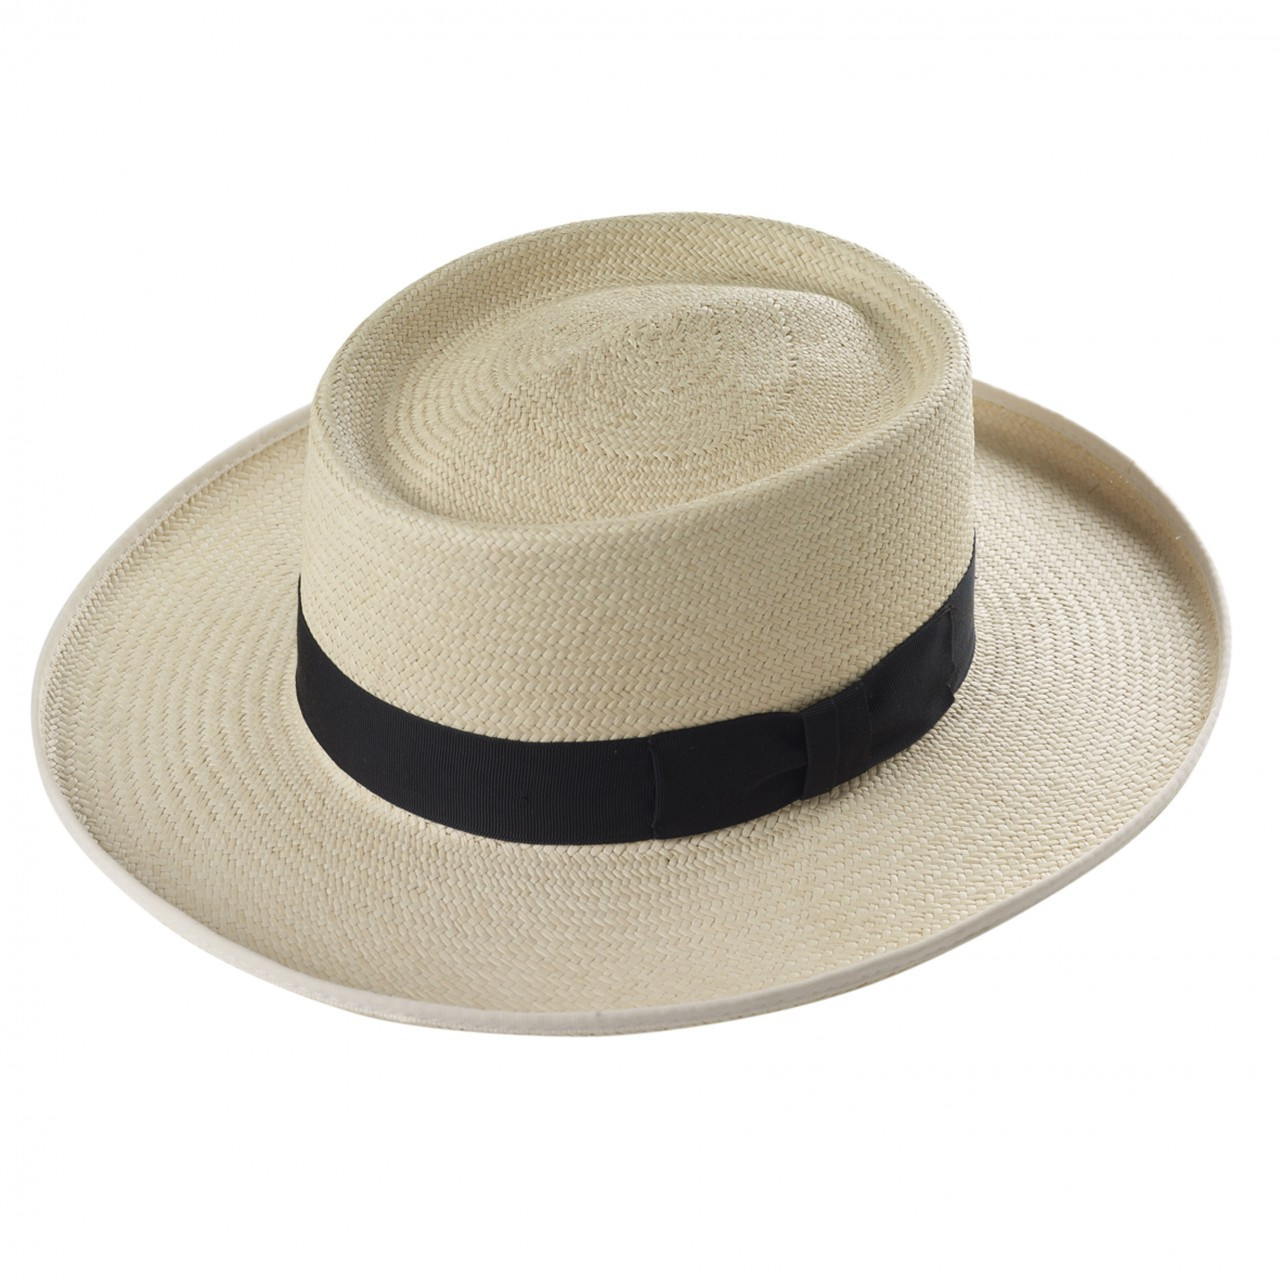 f507330e11ffee Men's Panama Planter - in Ivory with a black band and natural edging